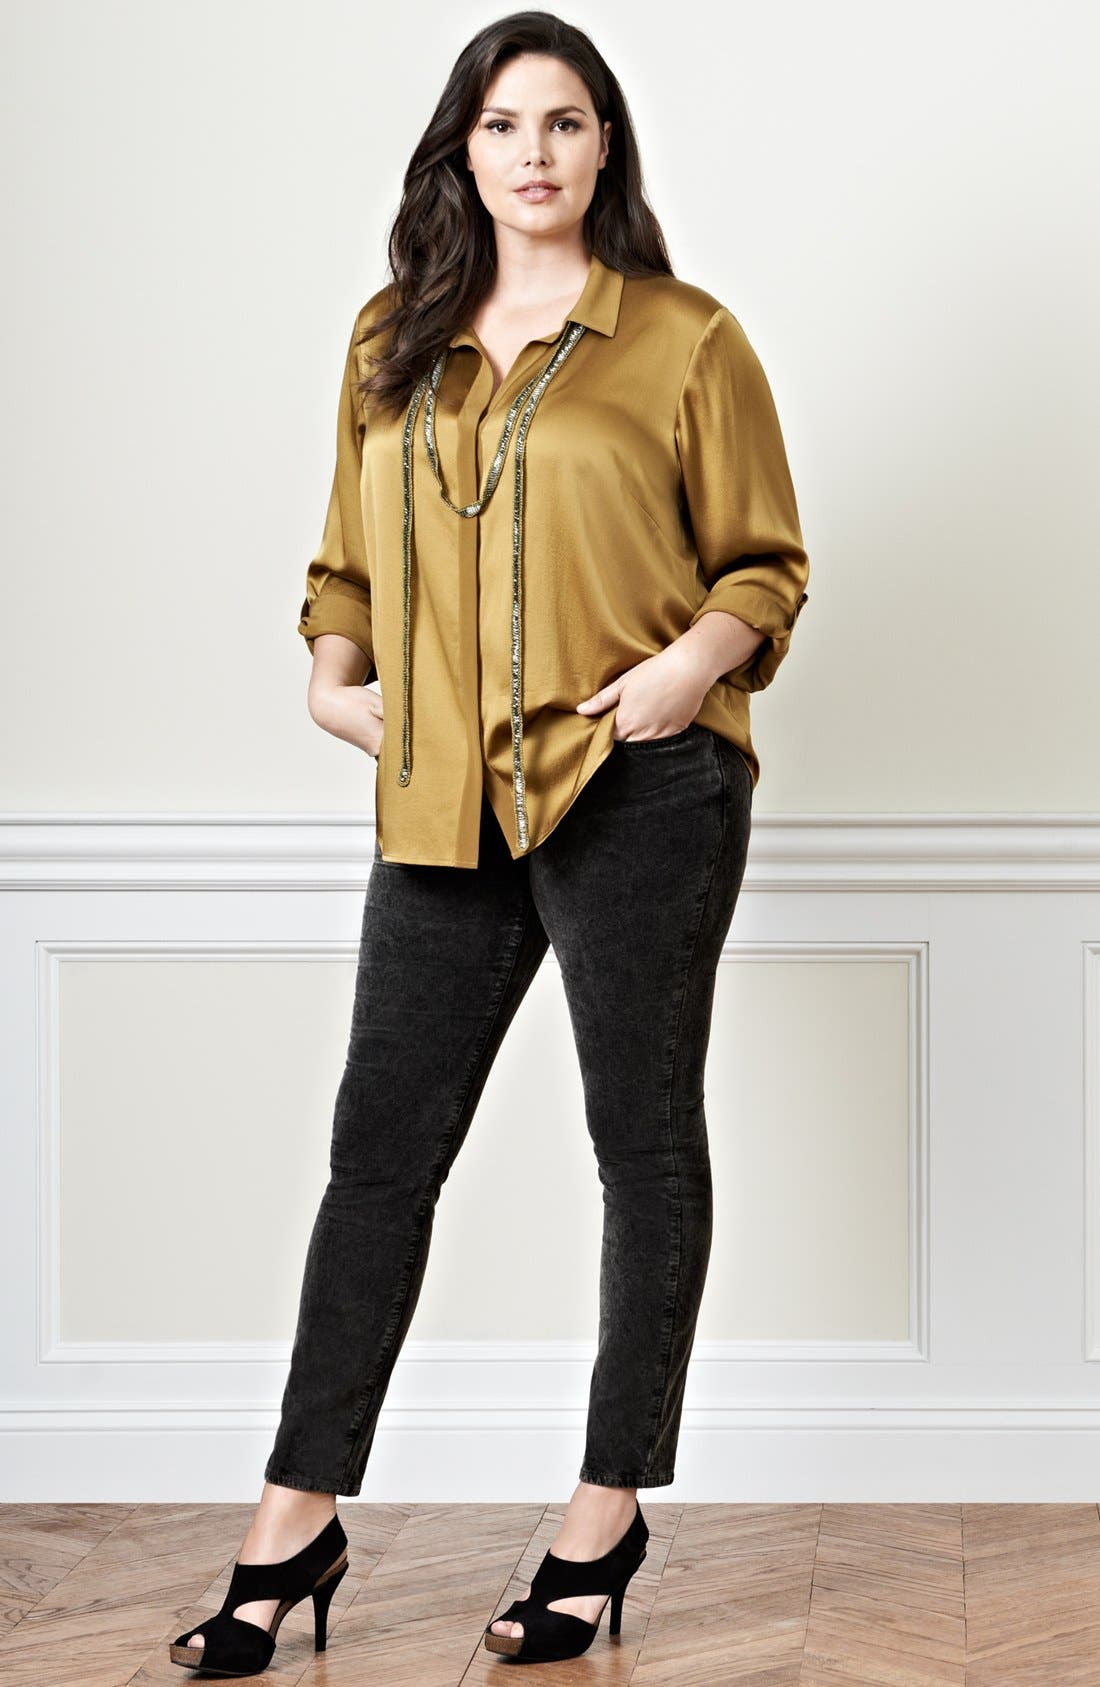 Main Image - Eileen Fisher Shirt, Jeans & Accessories